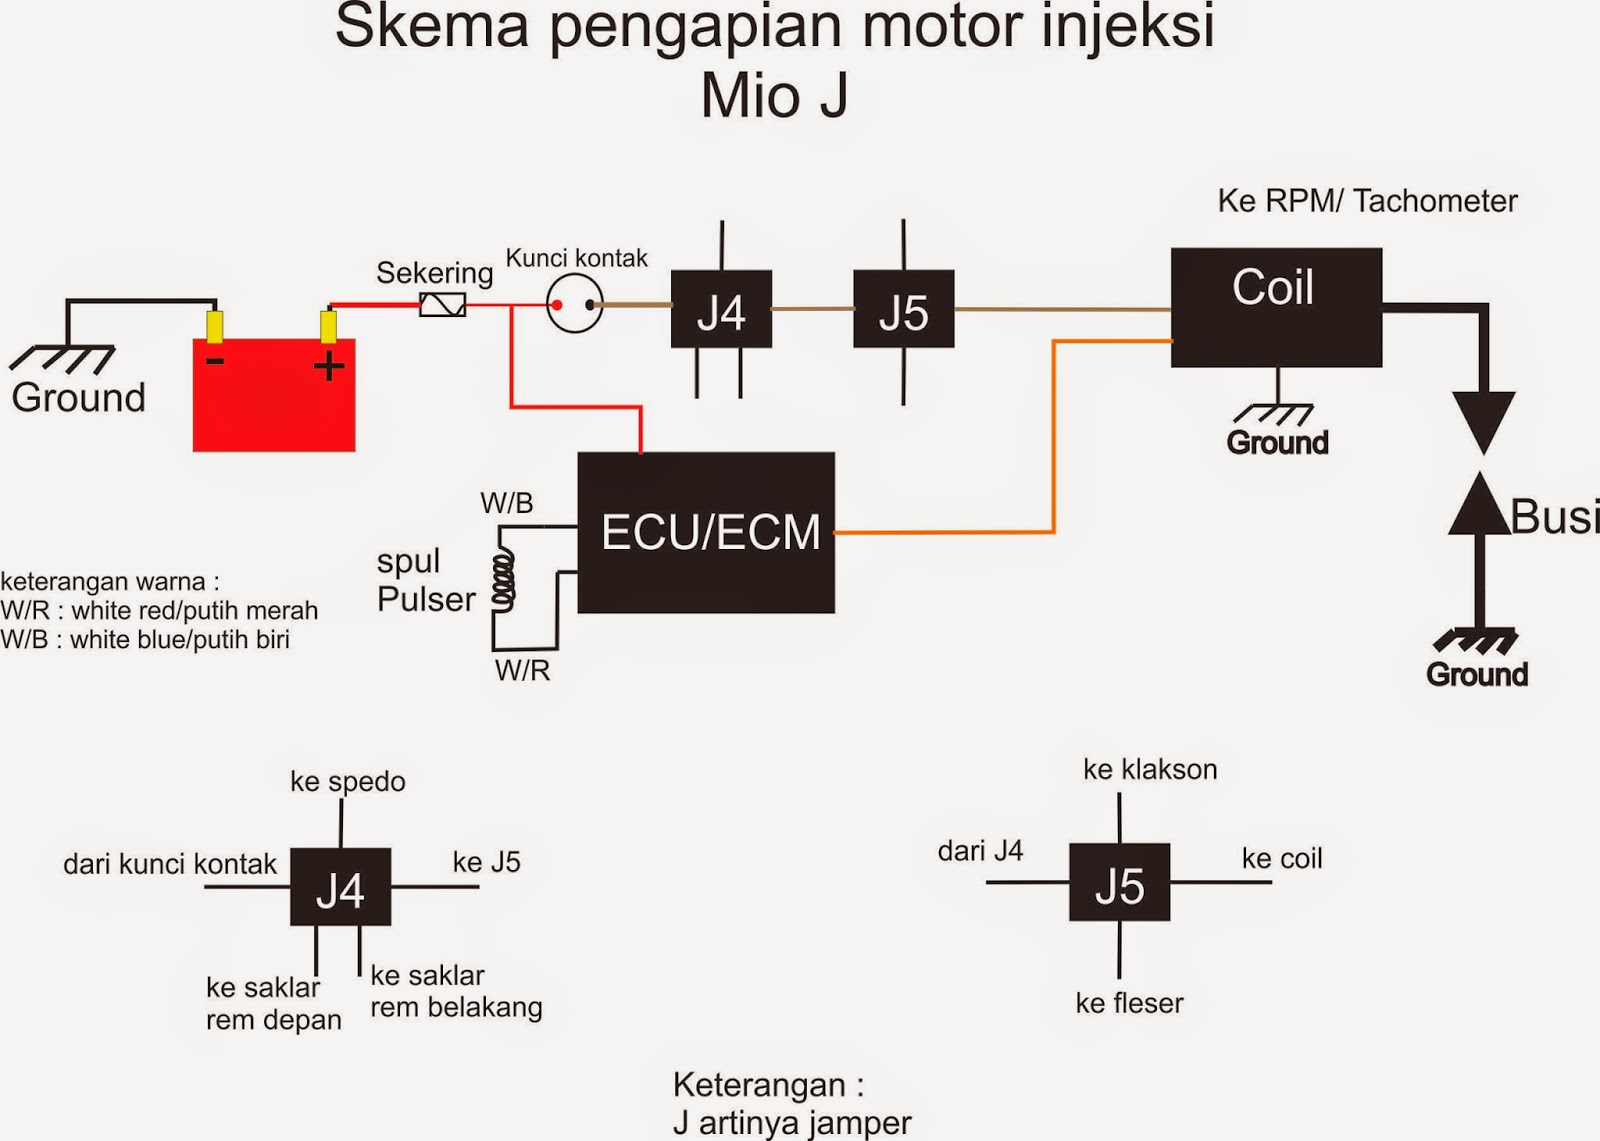 Wiring diagram motor injeksi wire center sistem pengapian motor injeksi rh auto champion blogspot com single phase motor wiring diagrams single phase cheapraybanclubmaster Images